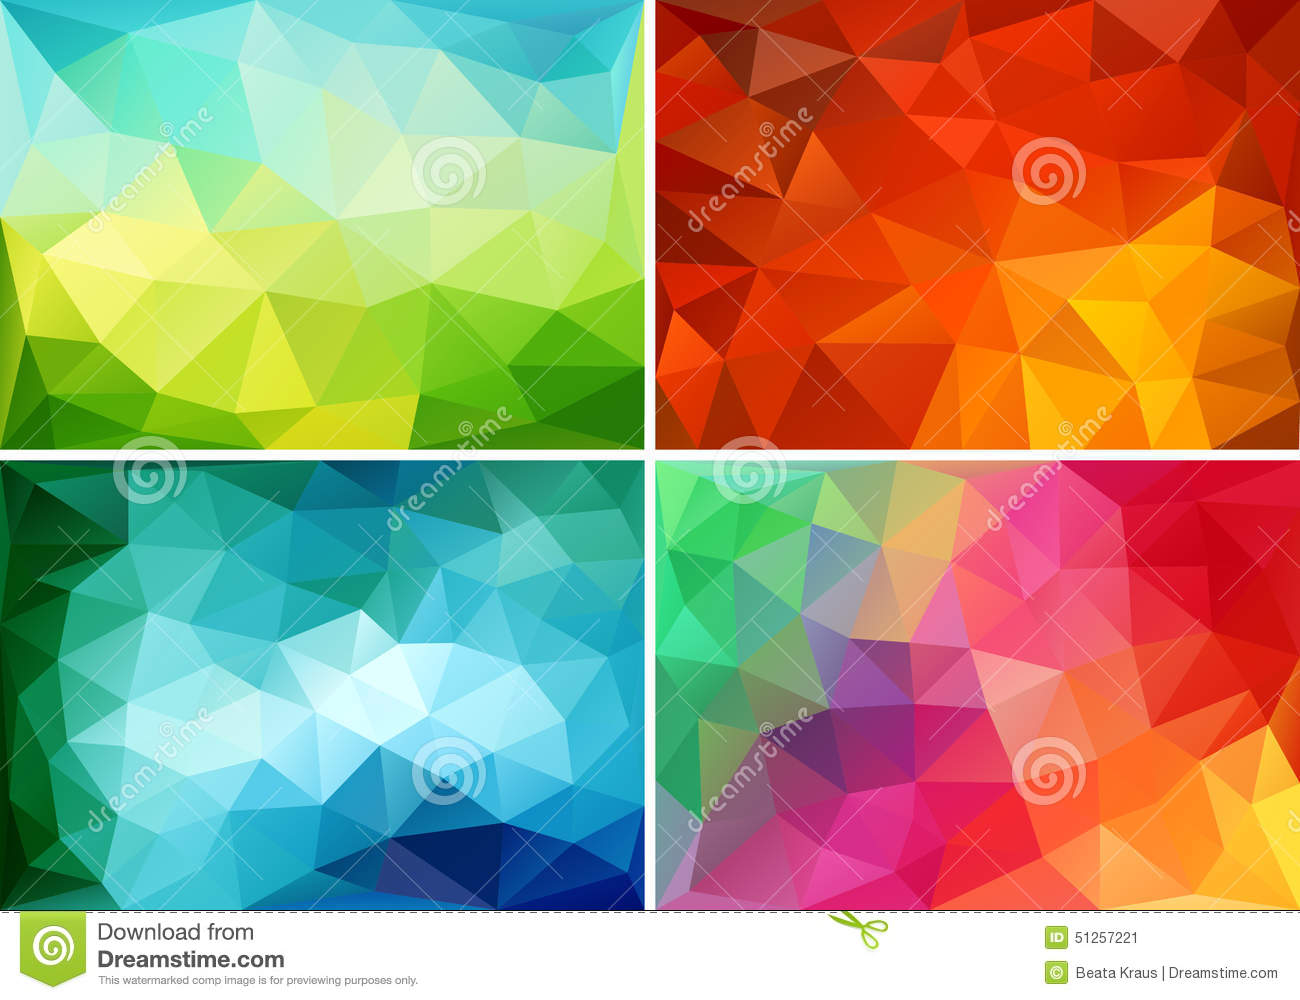 Abstract low poly backgrounds, vector set